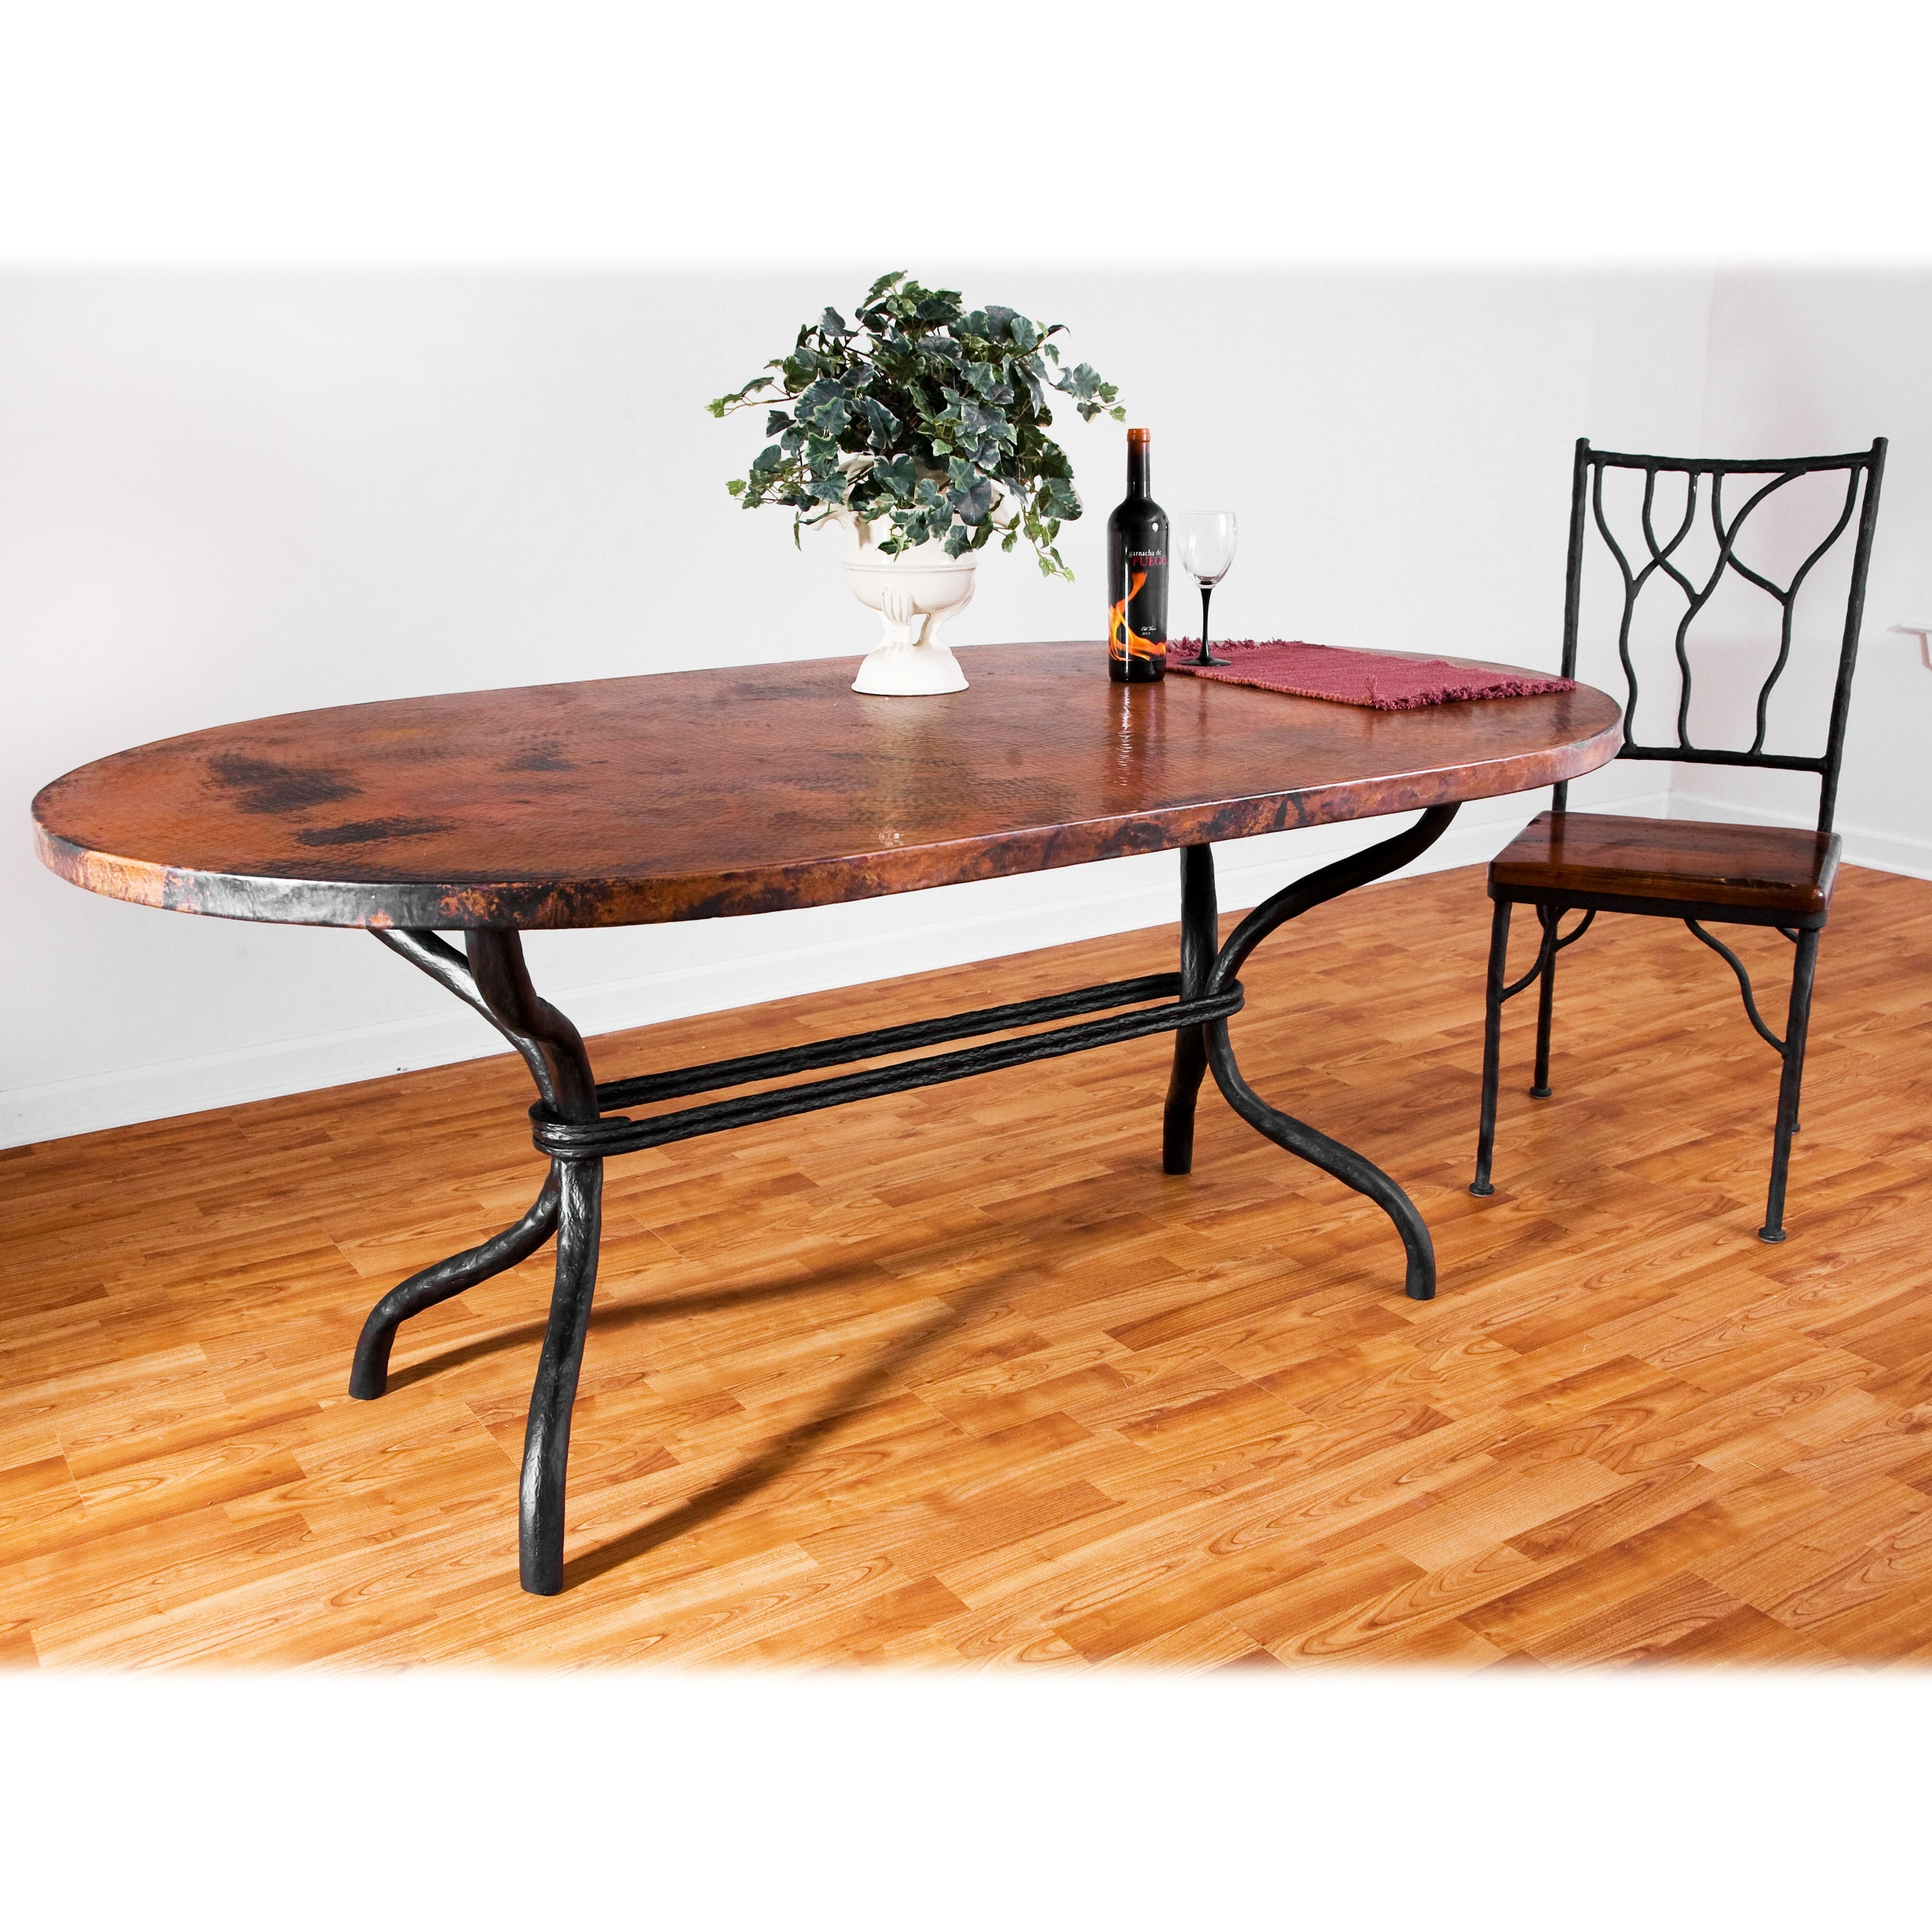 Copper Top Rectangular Coffee Table: Contemporary Wrought Iron Woodland Dining Table